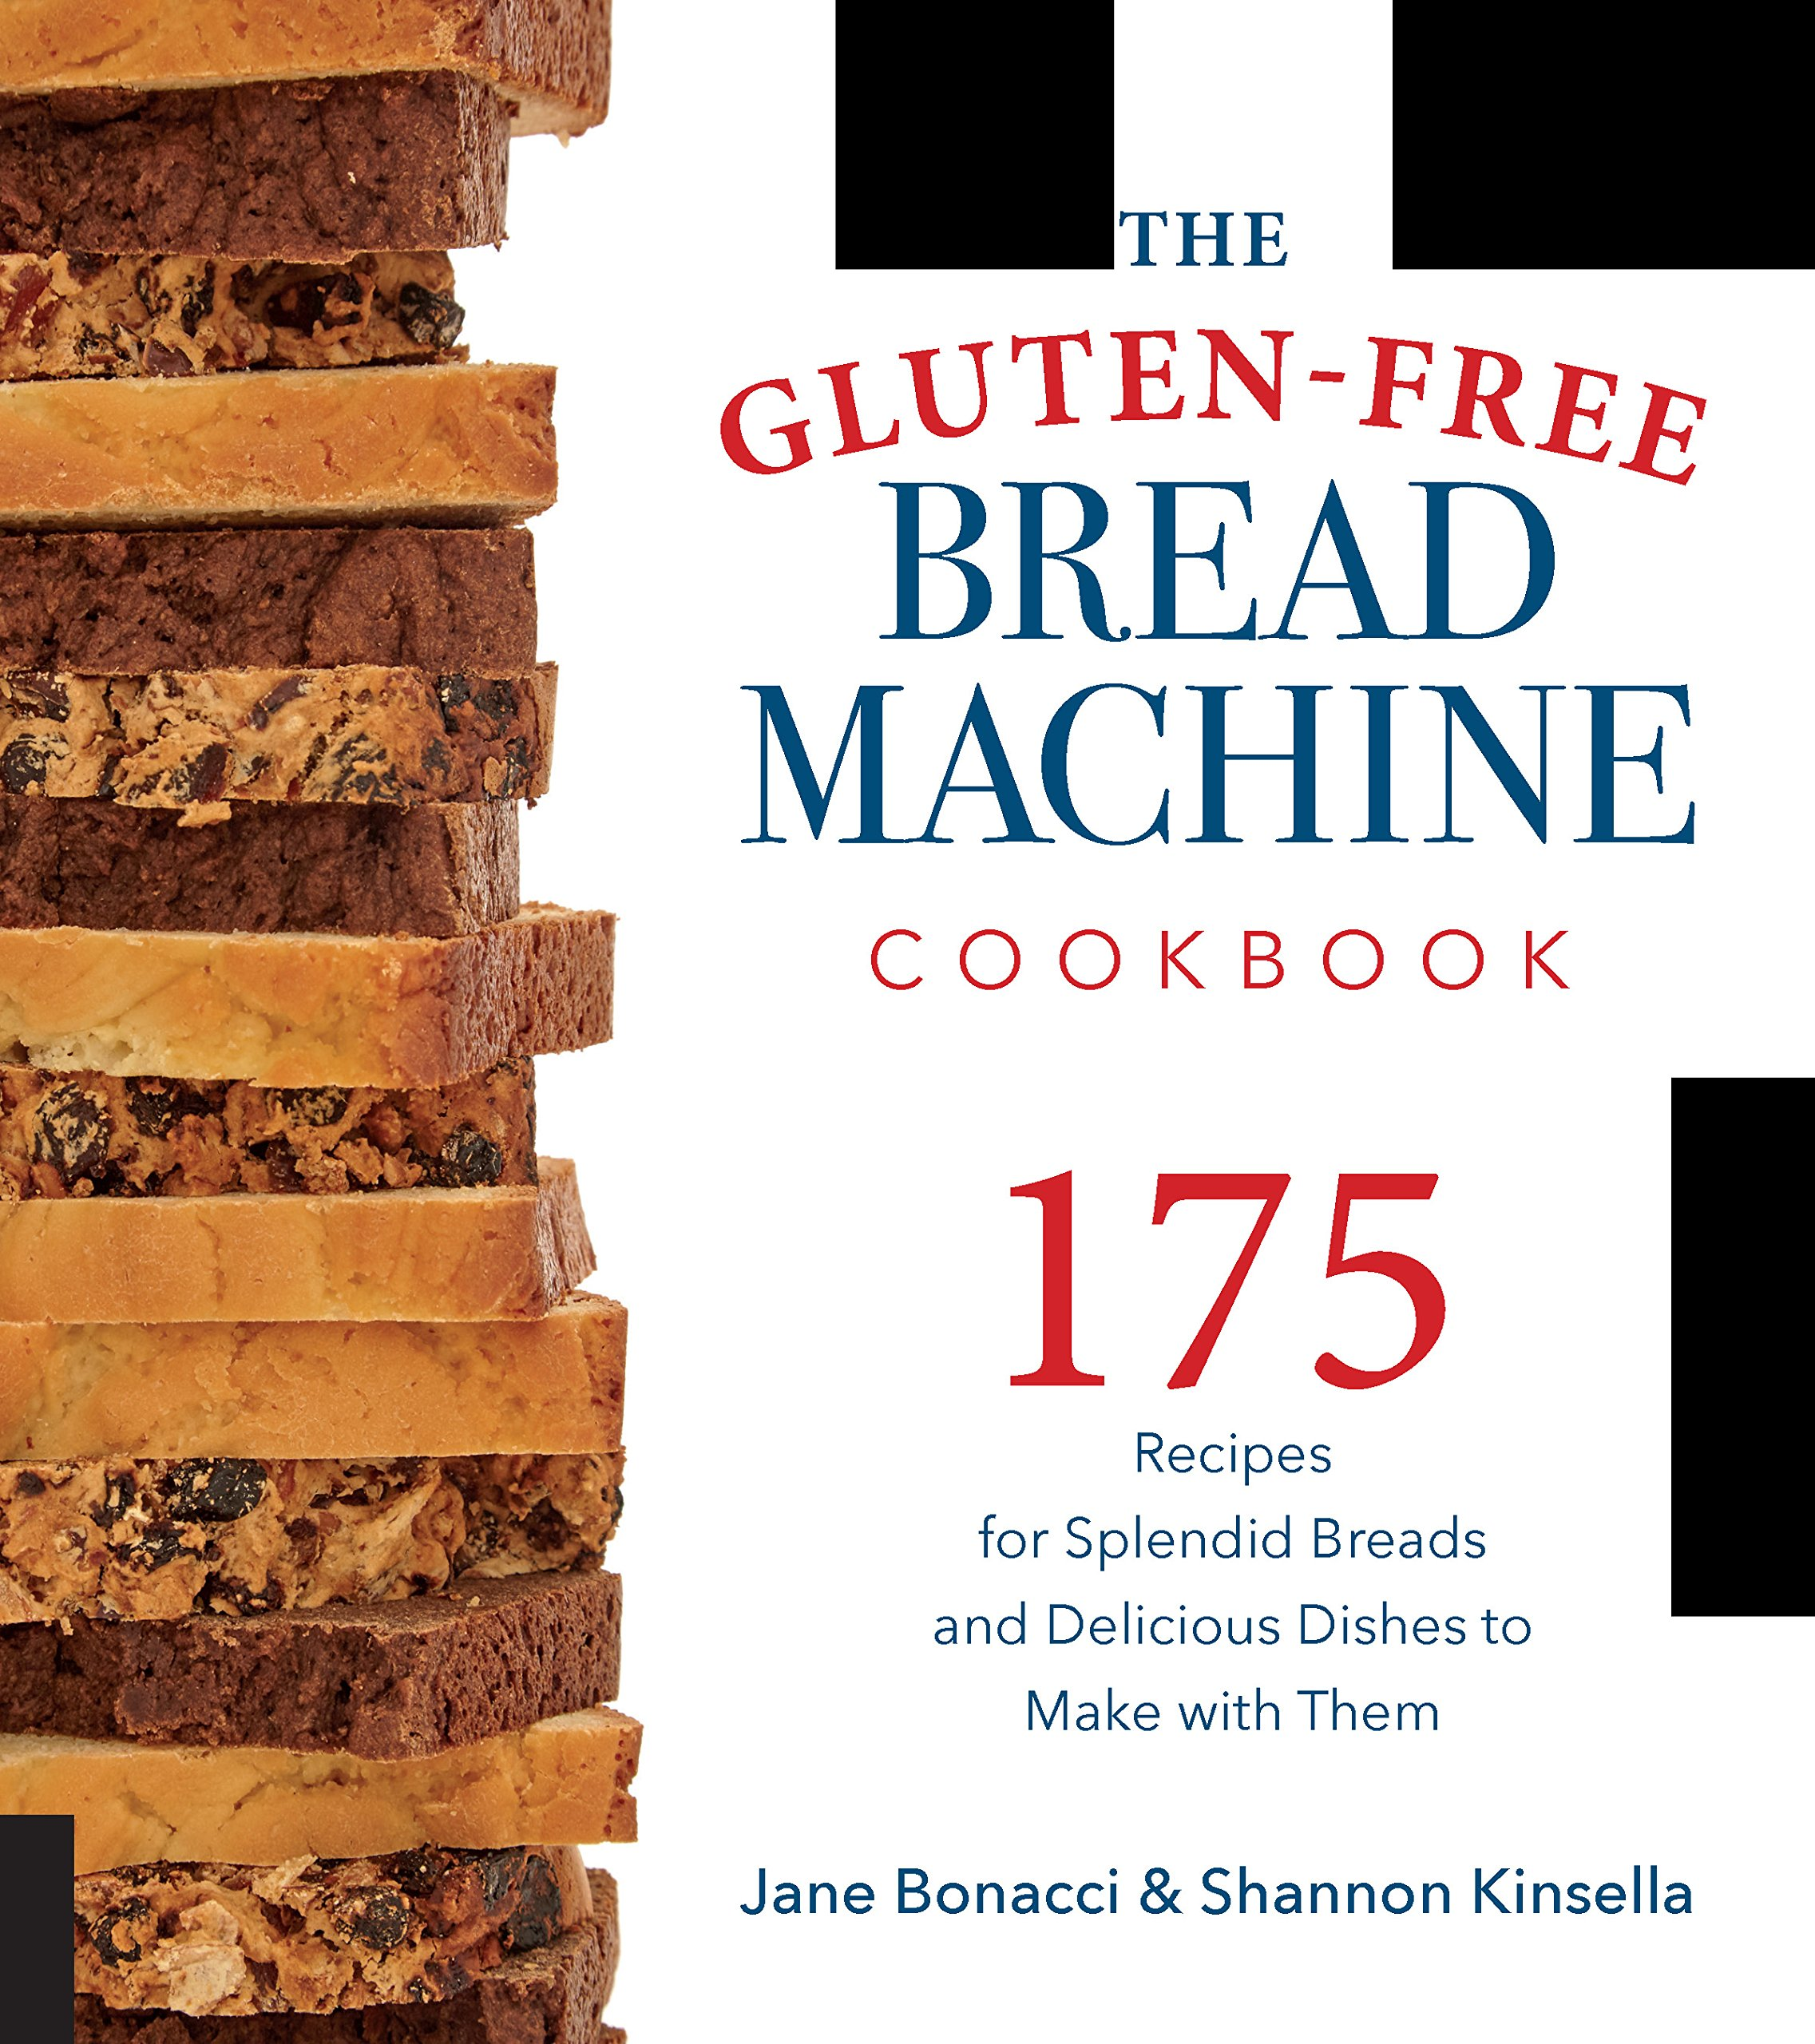 The Gluten-Free Bread Machine Cookbook: 175 Recipes for Splendid Breads and Delicious Dishes to Make with Them by imusti